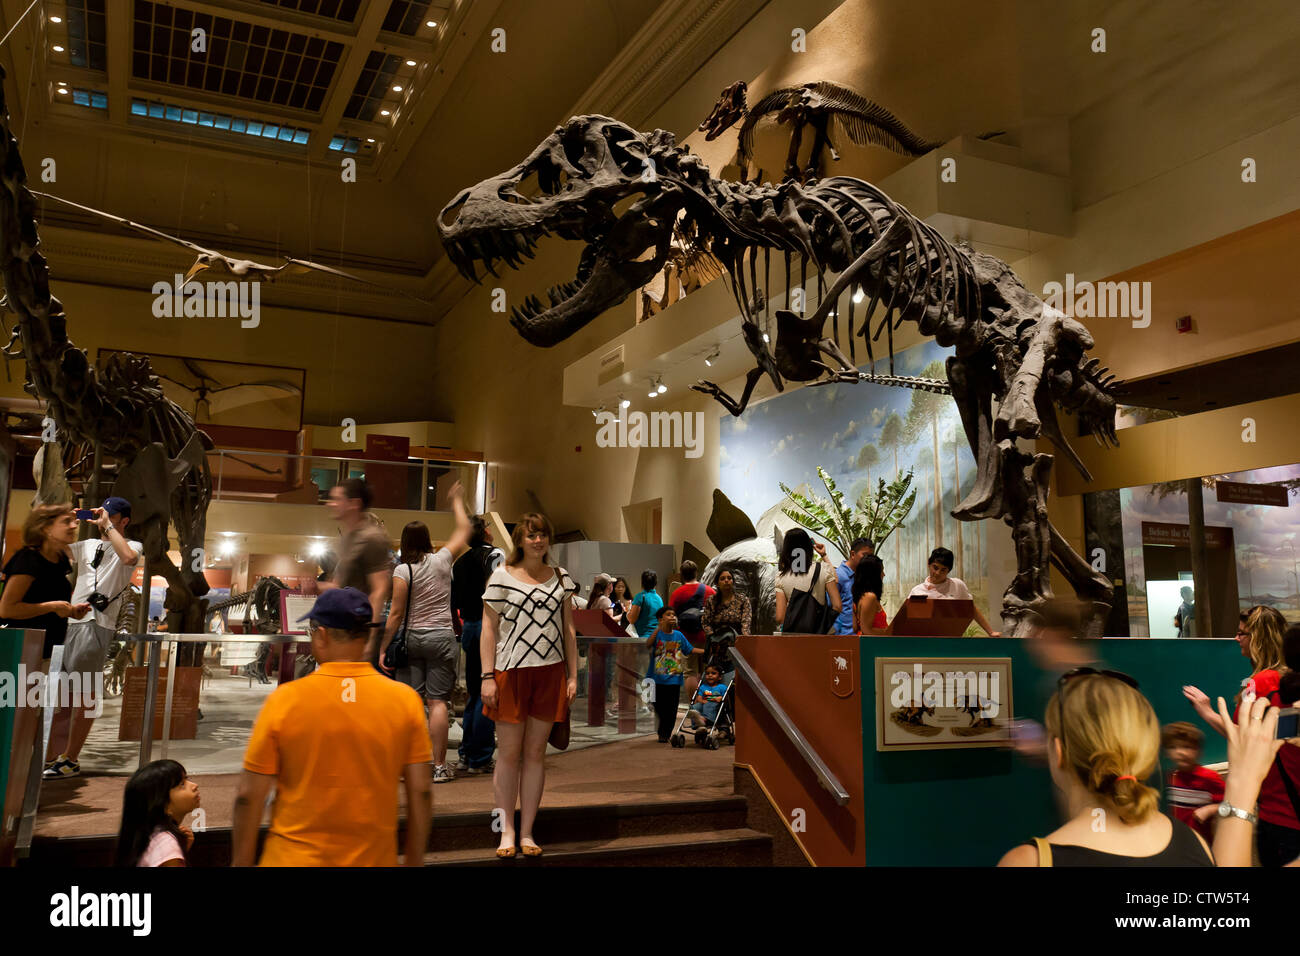 T rex exhibit - Natural History Museum, Washington, DC - Stock Image